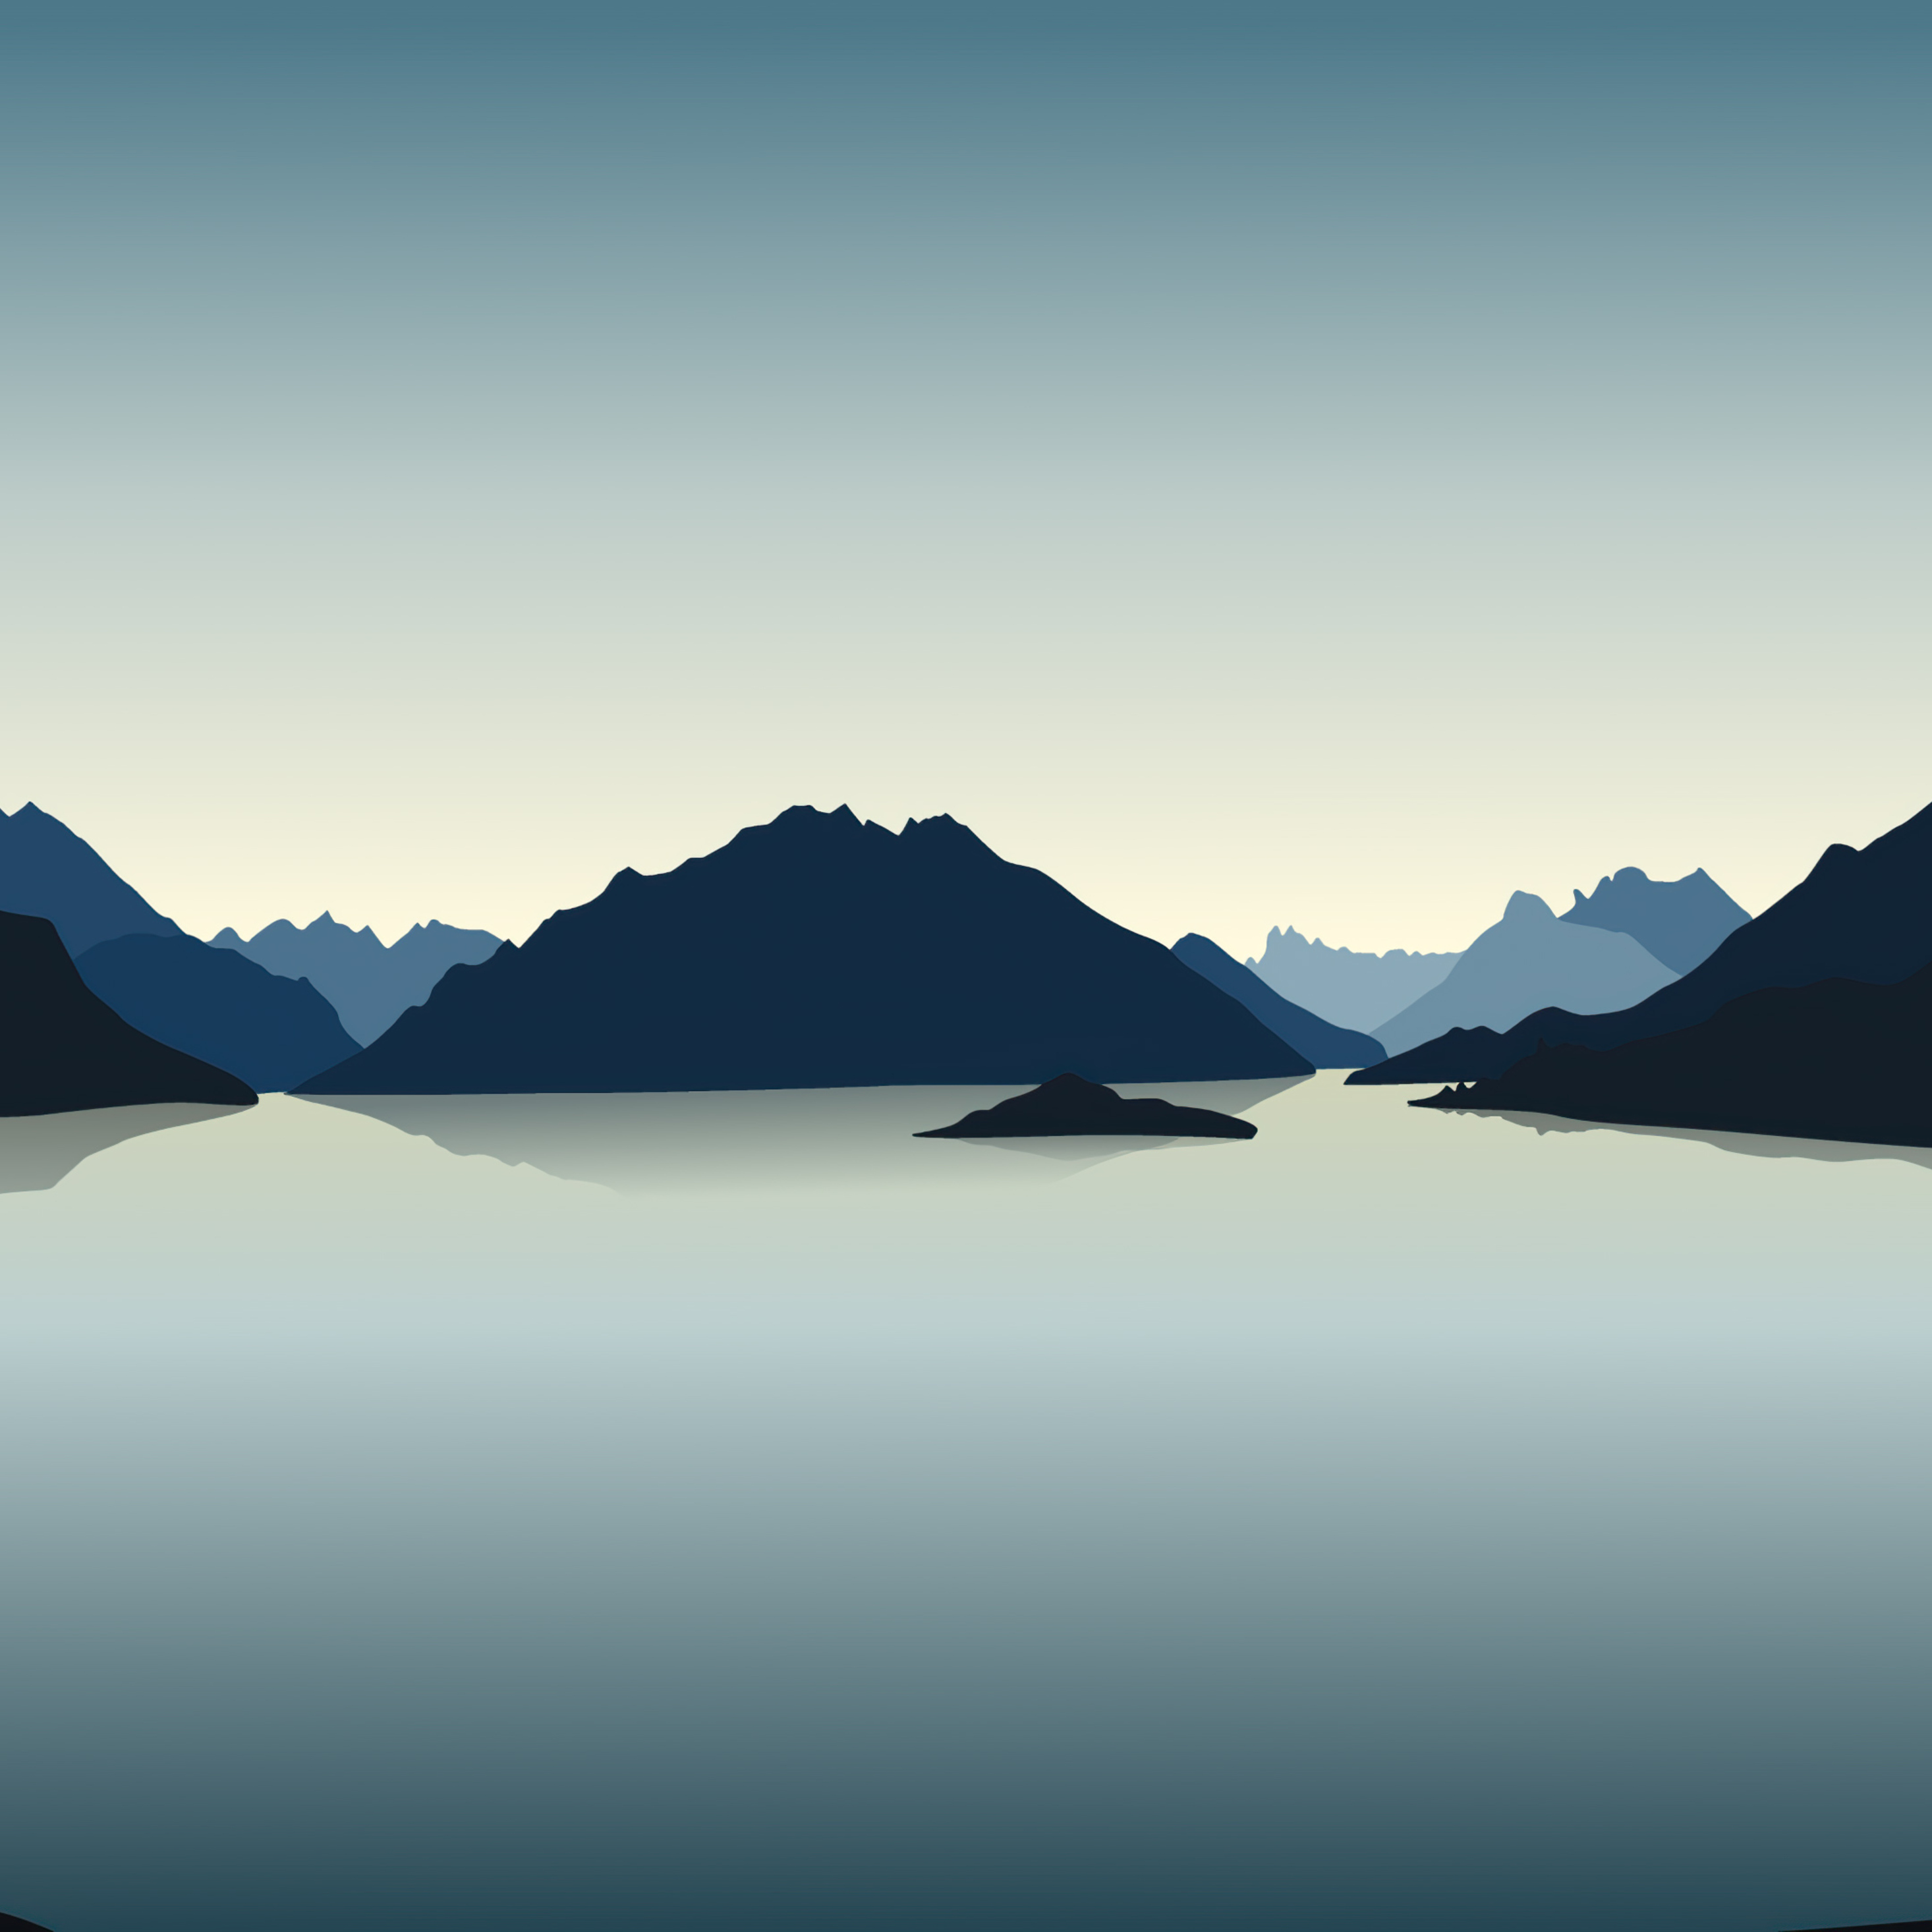 2932x2932 Vector Landscape Reflection Mountains 4k Ipad Pro Retina Display Hd 4k Wallpapers Images Backgrounds Photos And Pictures